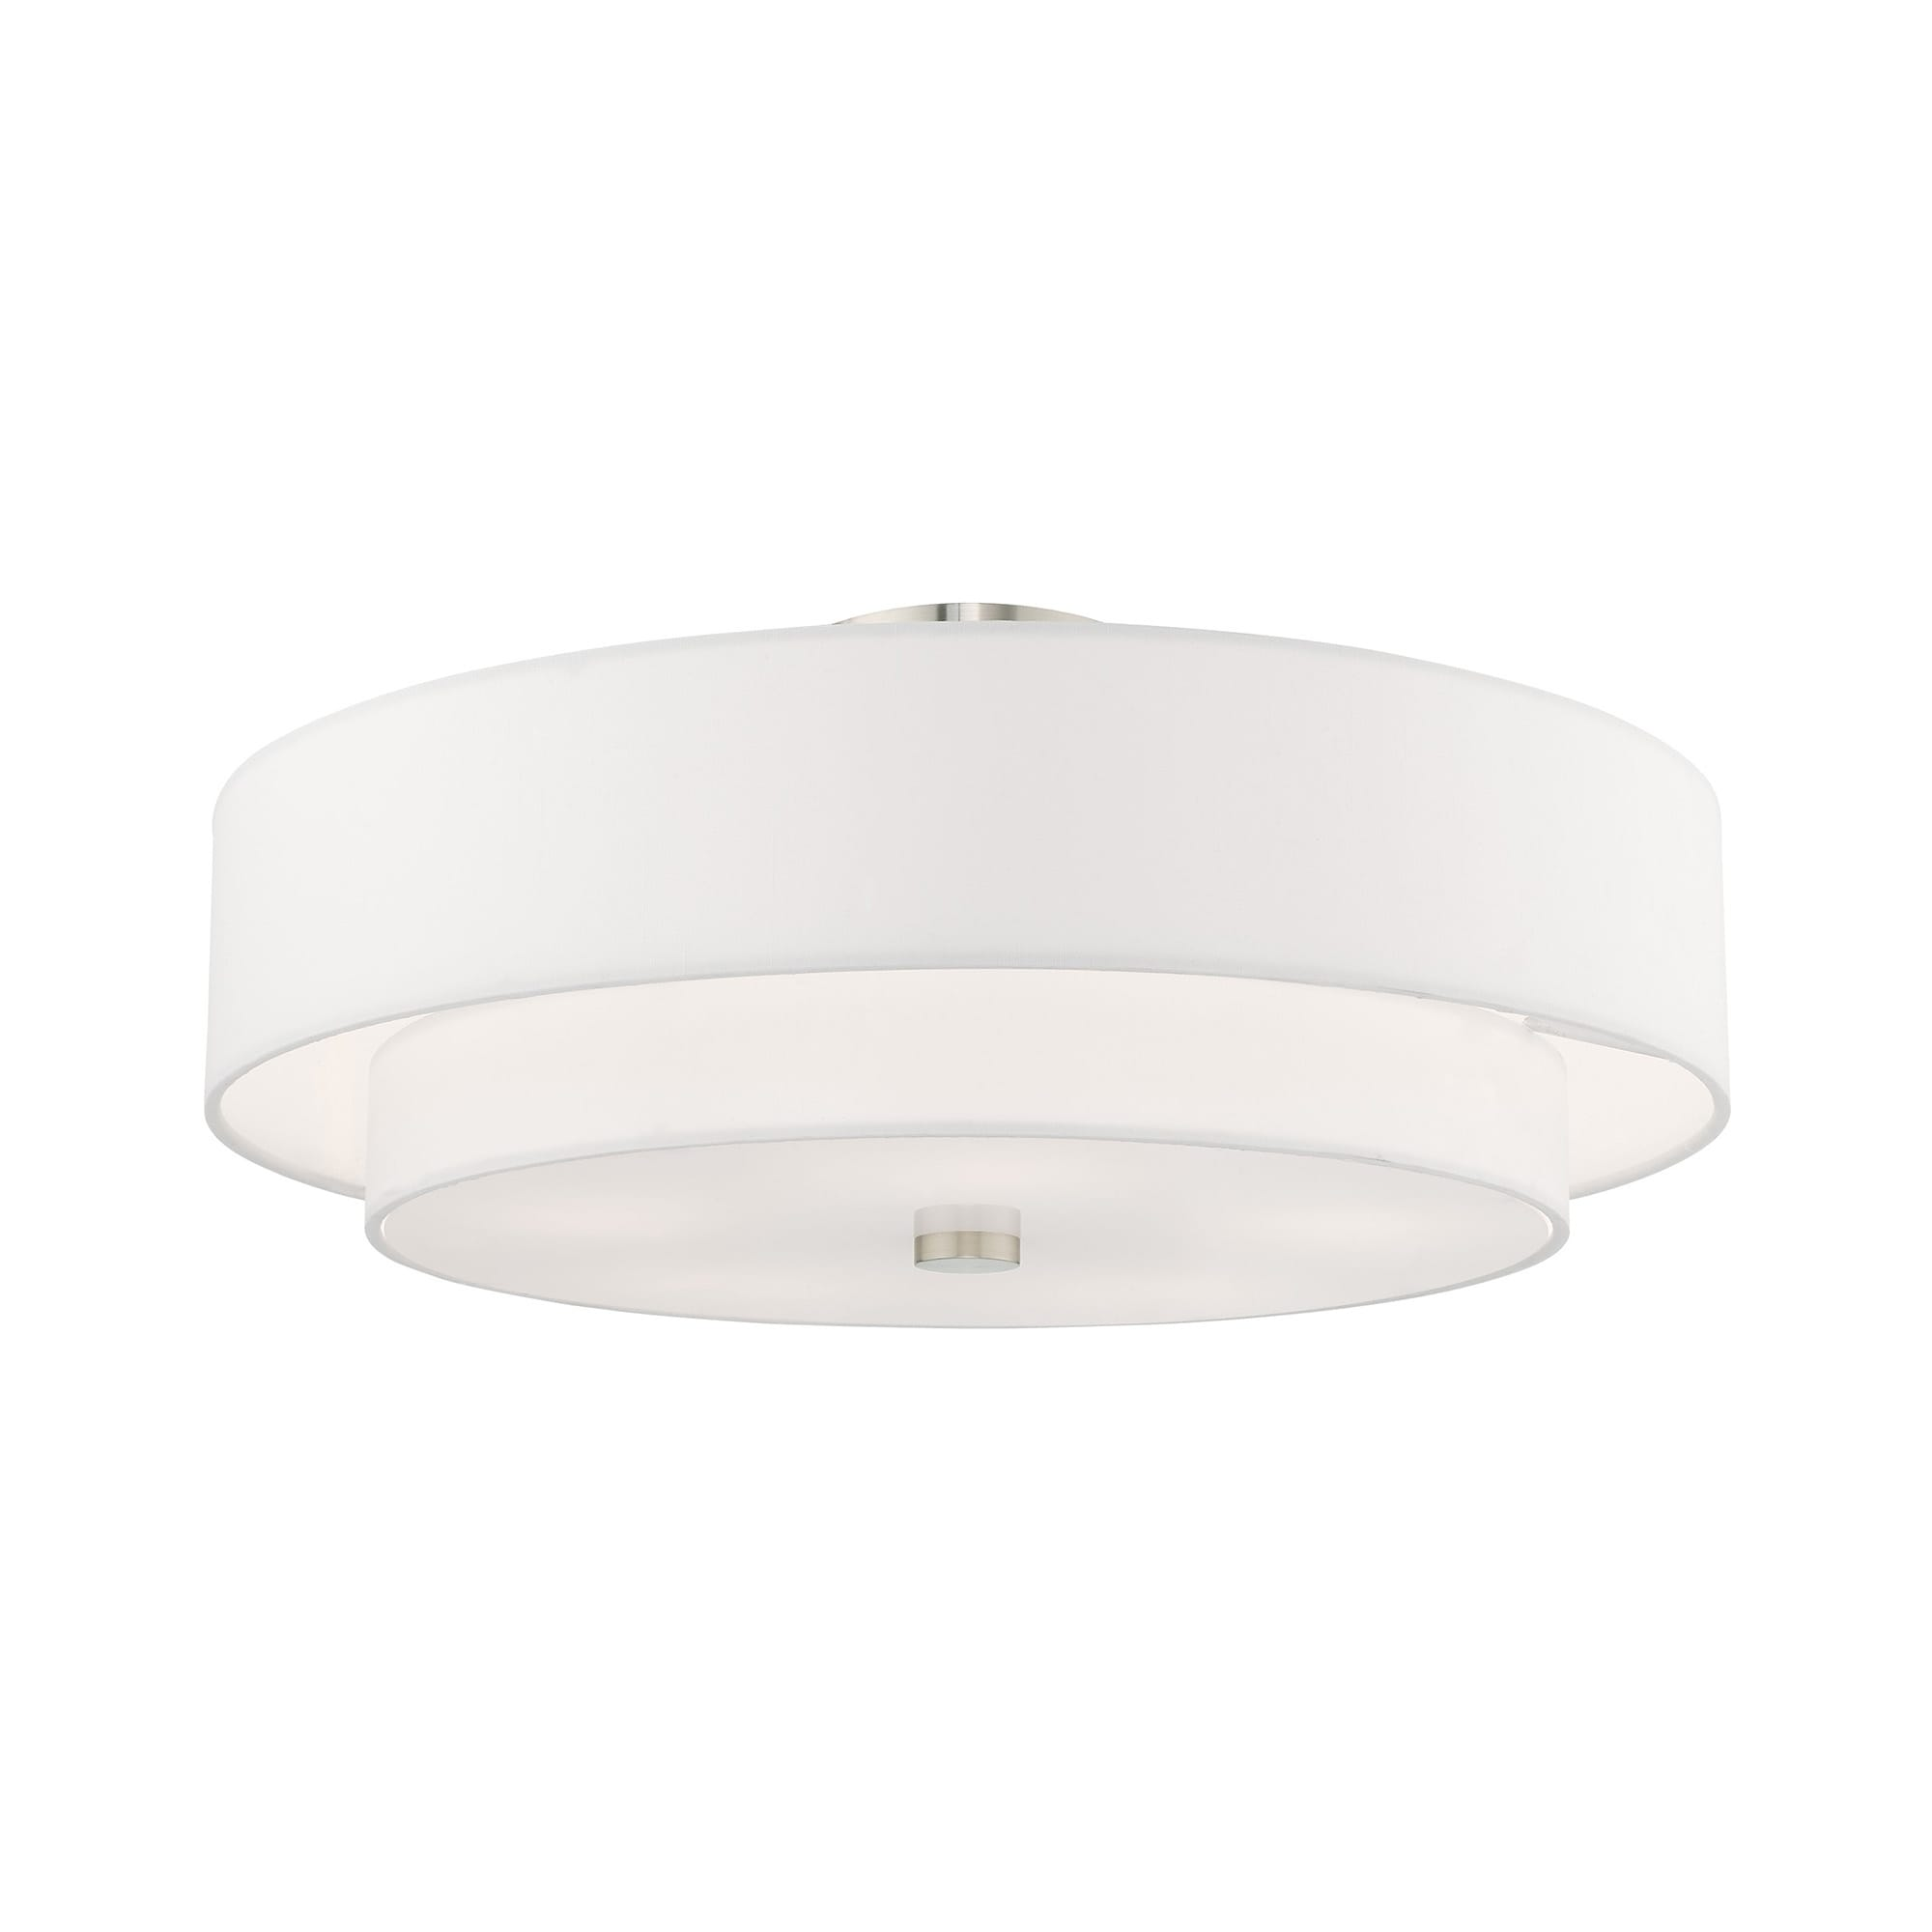 Shop Livex Lighting Meridian 5 Light Double Drum Shade Ceiling Mount 22 Dia X 9 5 H 22 Dia X 9 5 H Overstock 25721873 Brushed Nickel Off White